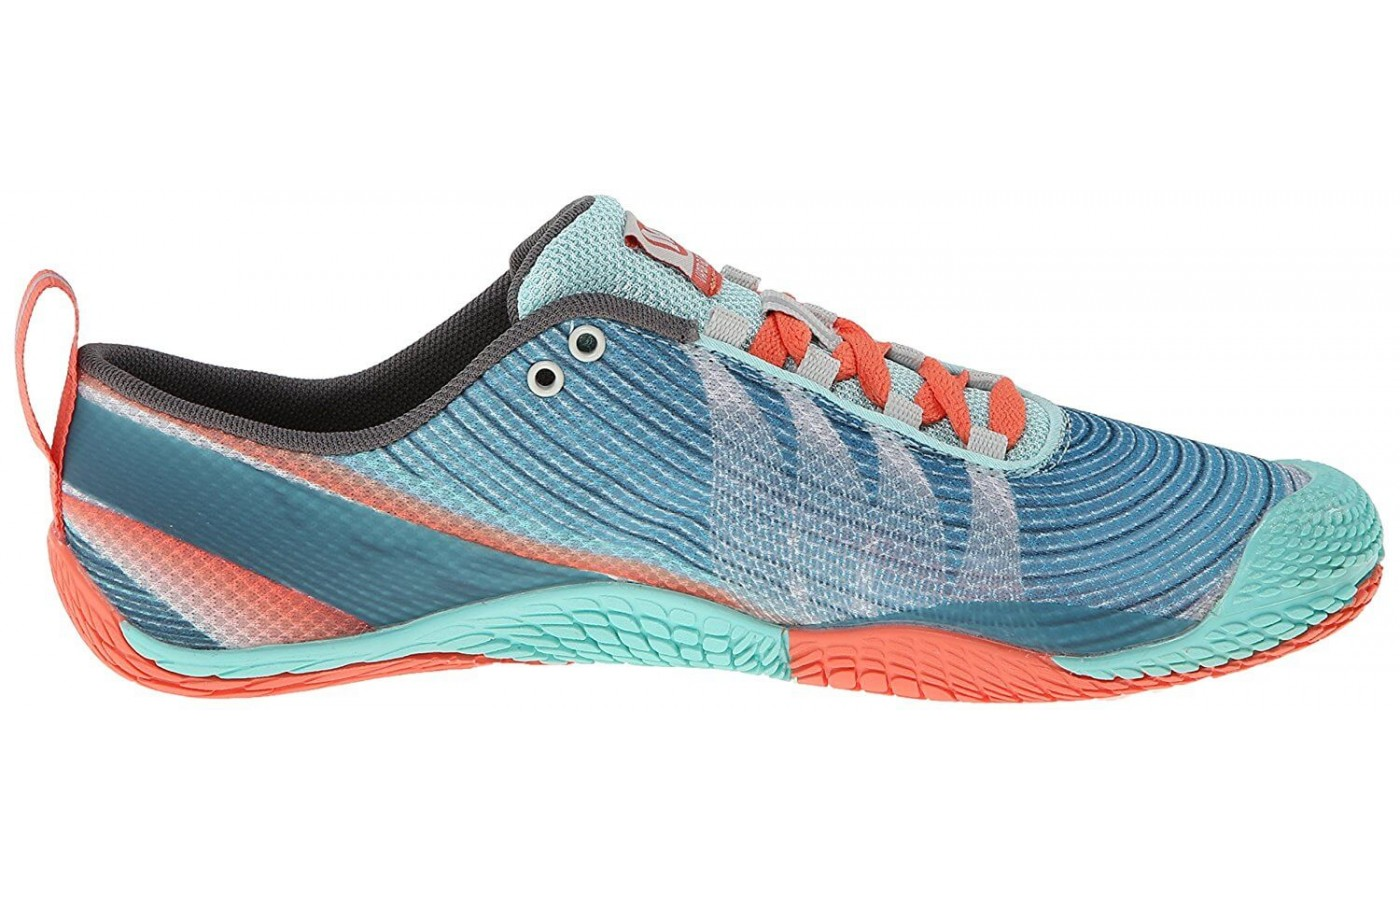 The Merrell Vapor Glove 3 features 2mm outsole lugs